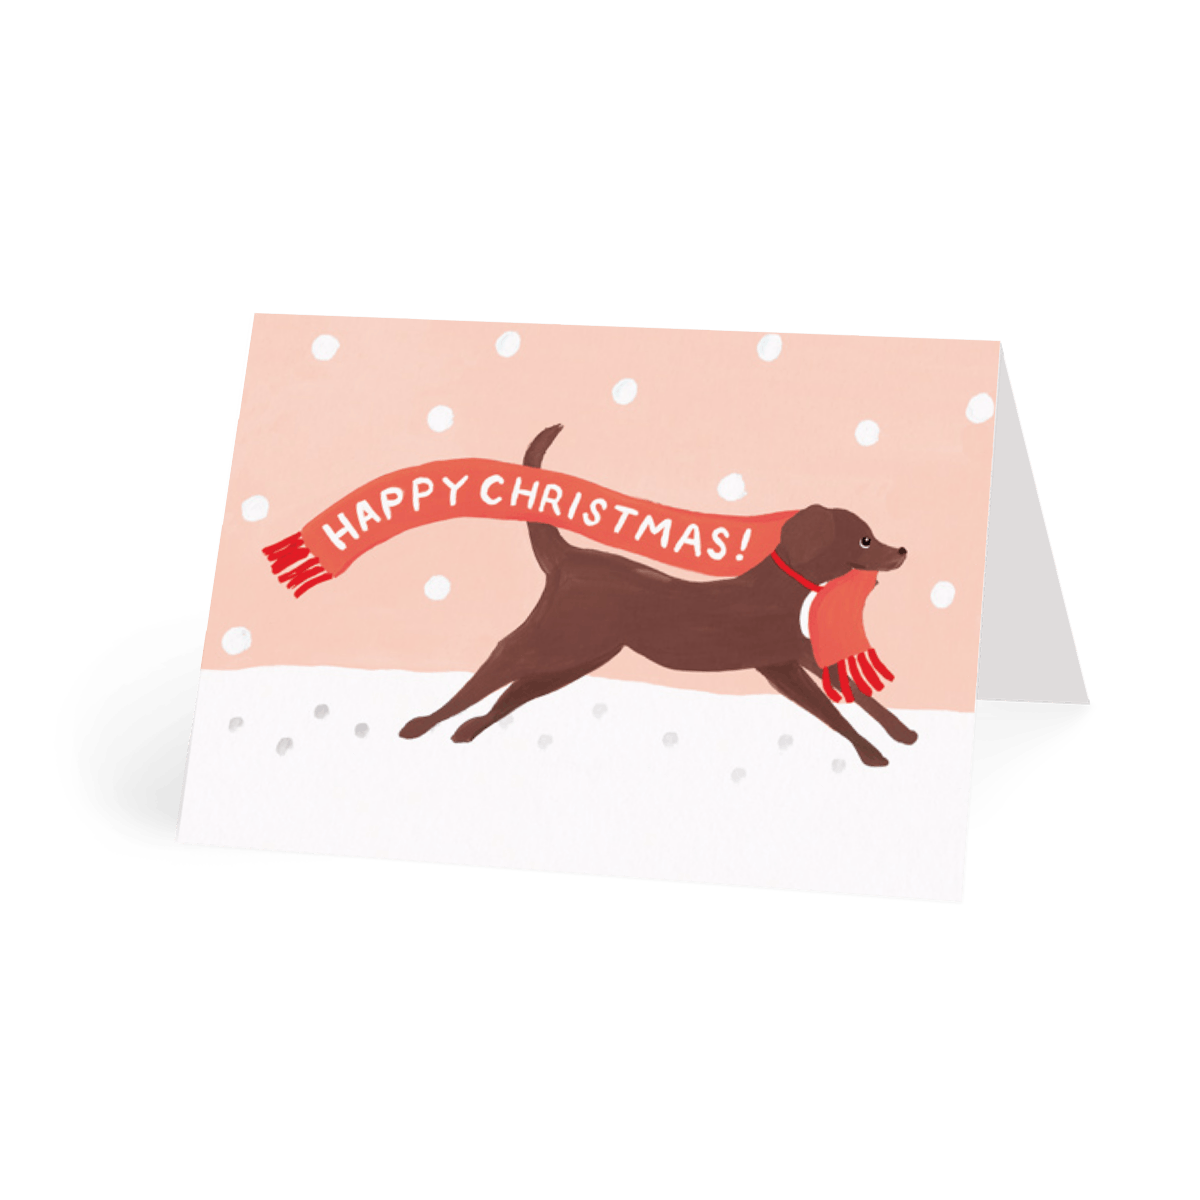 Https%3a%2f%2fwww.papier.com%2fproduct image%2f24657%2f14%2fhappy christmas dog 6164 avant 1498576239.png?ixlib=rb 1.1